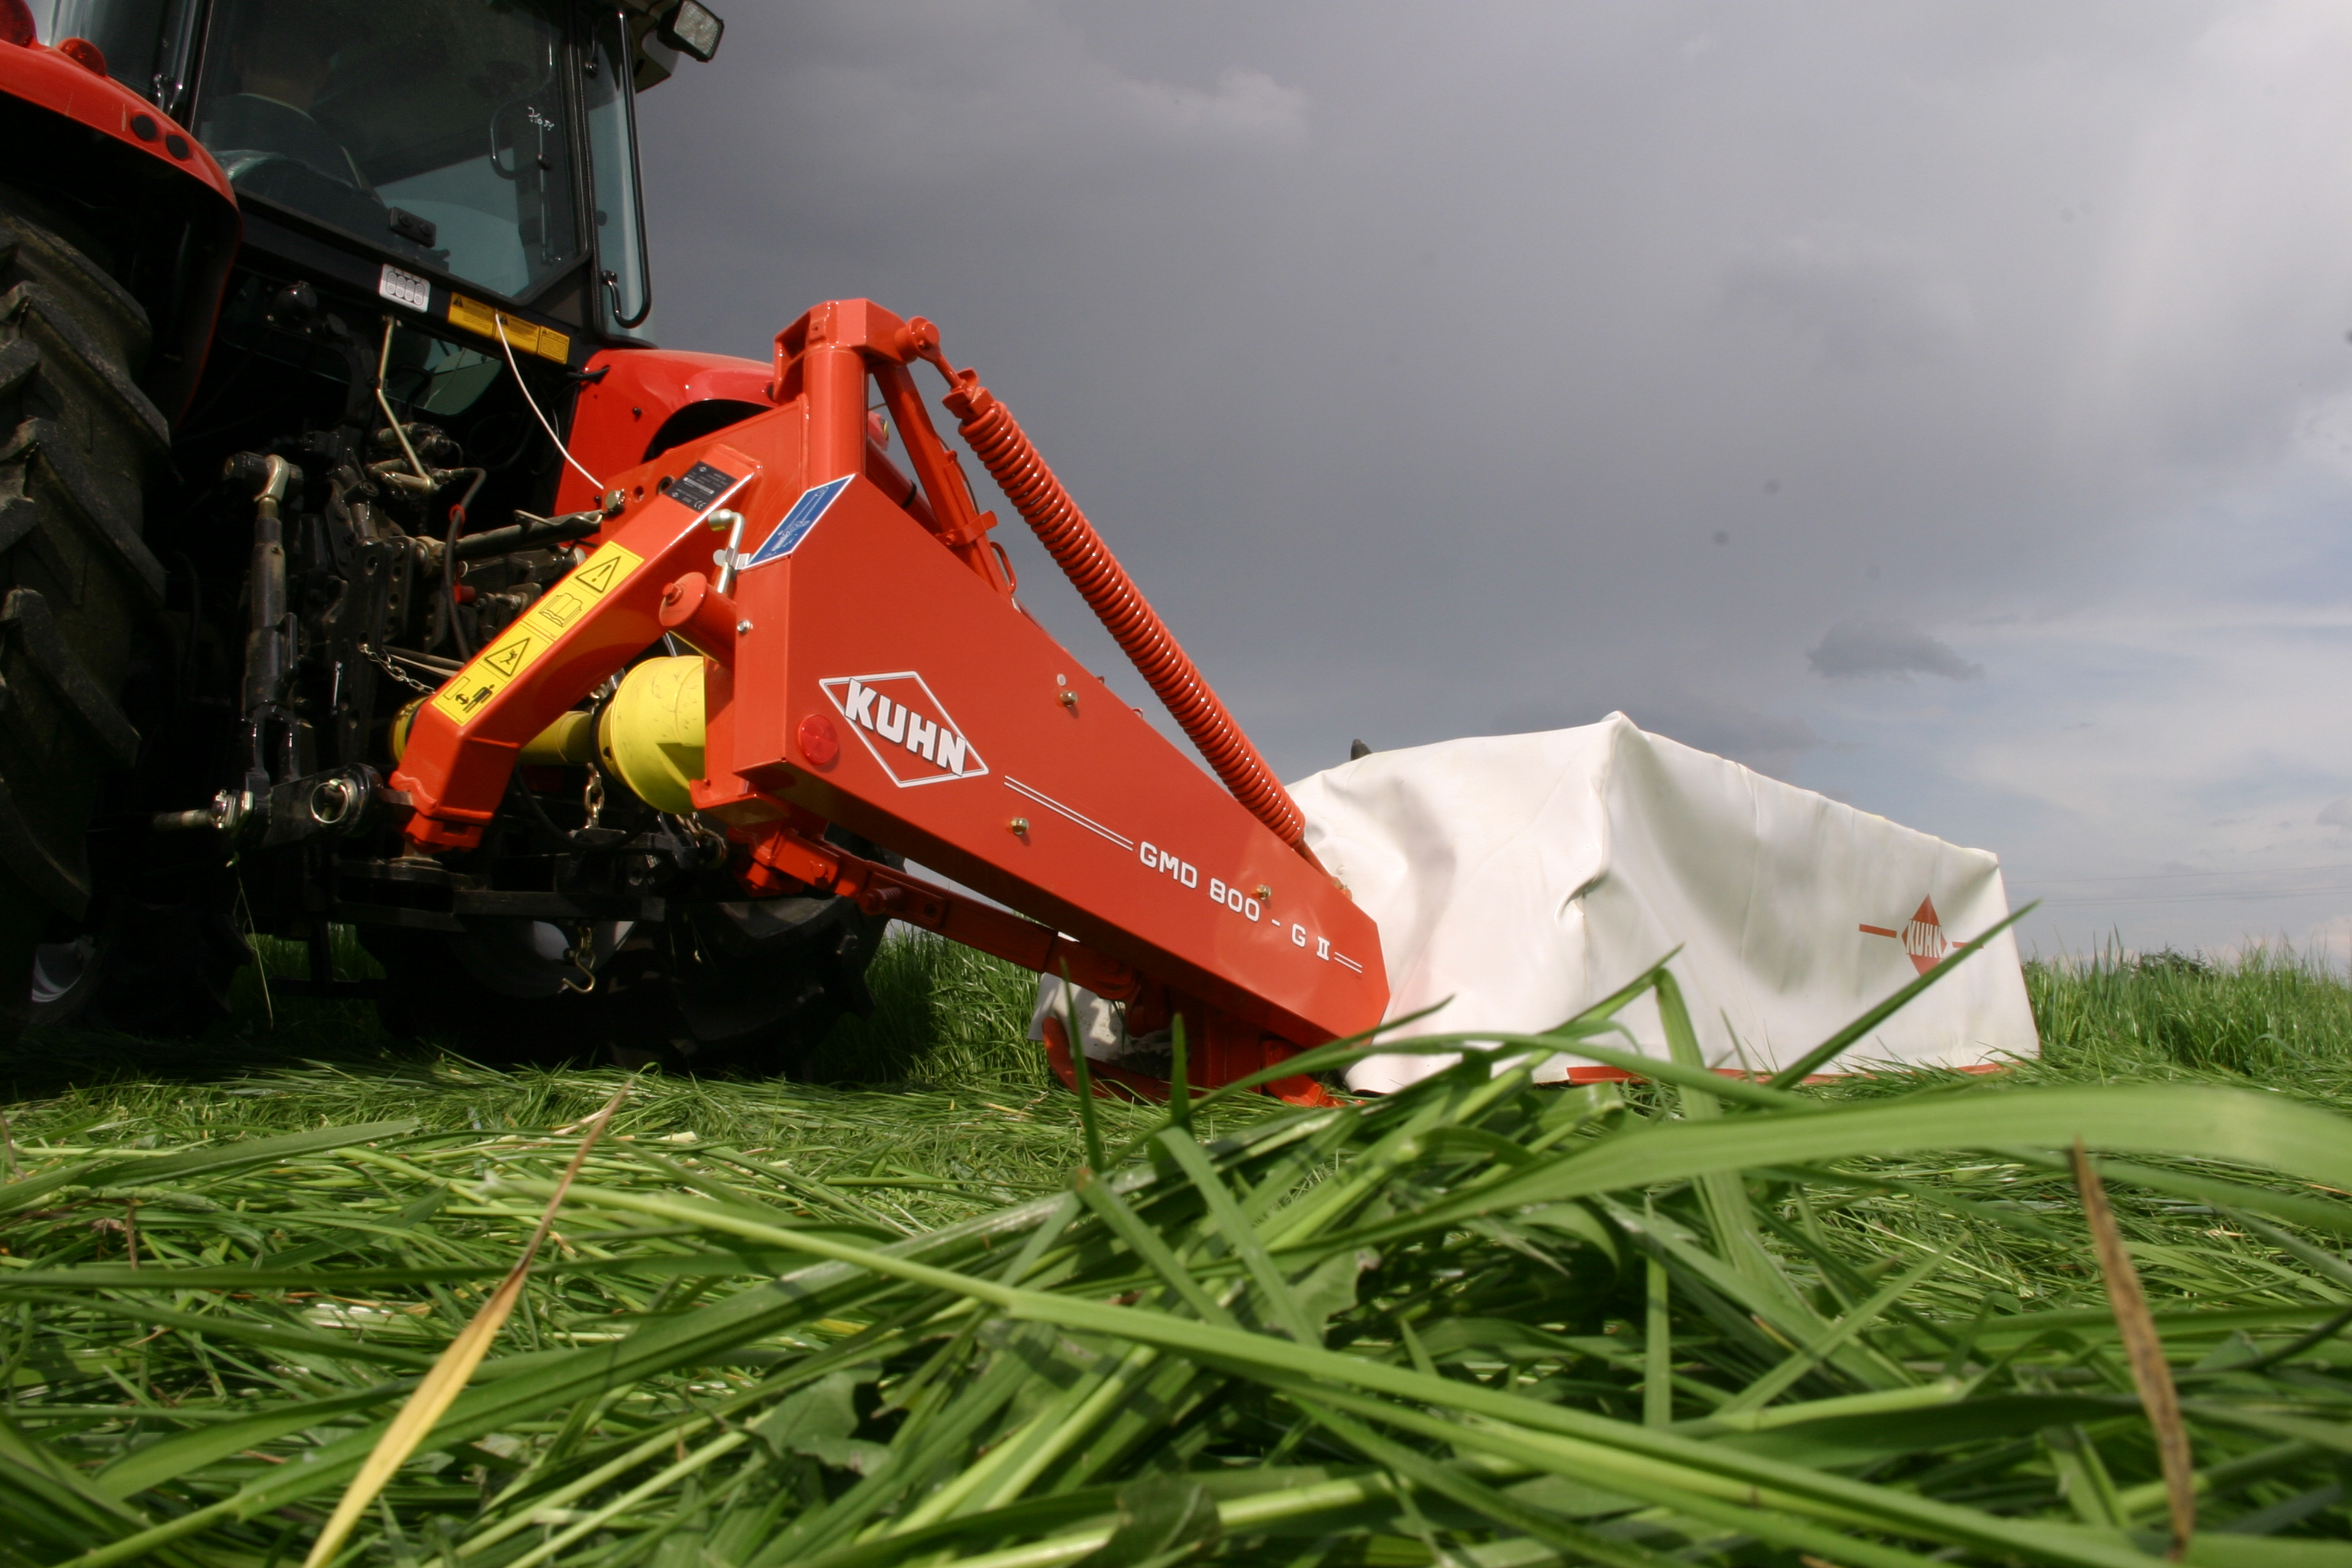 Kuhn GMD 800 GII Specifications & Technical Data (2010-2014